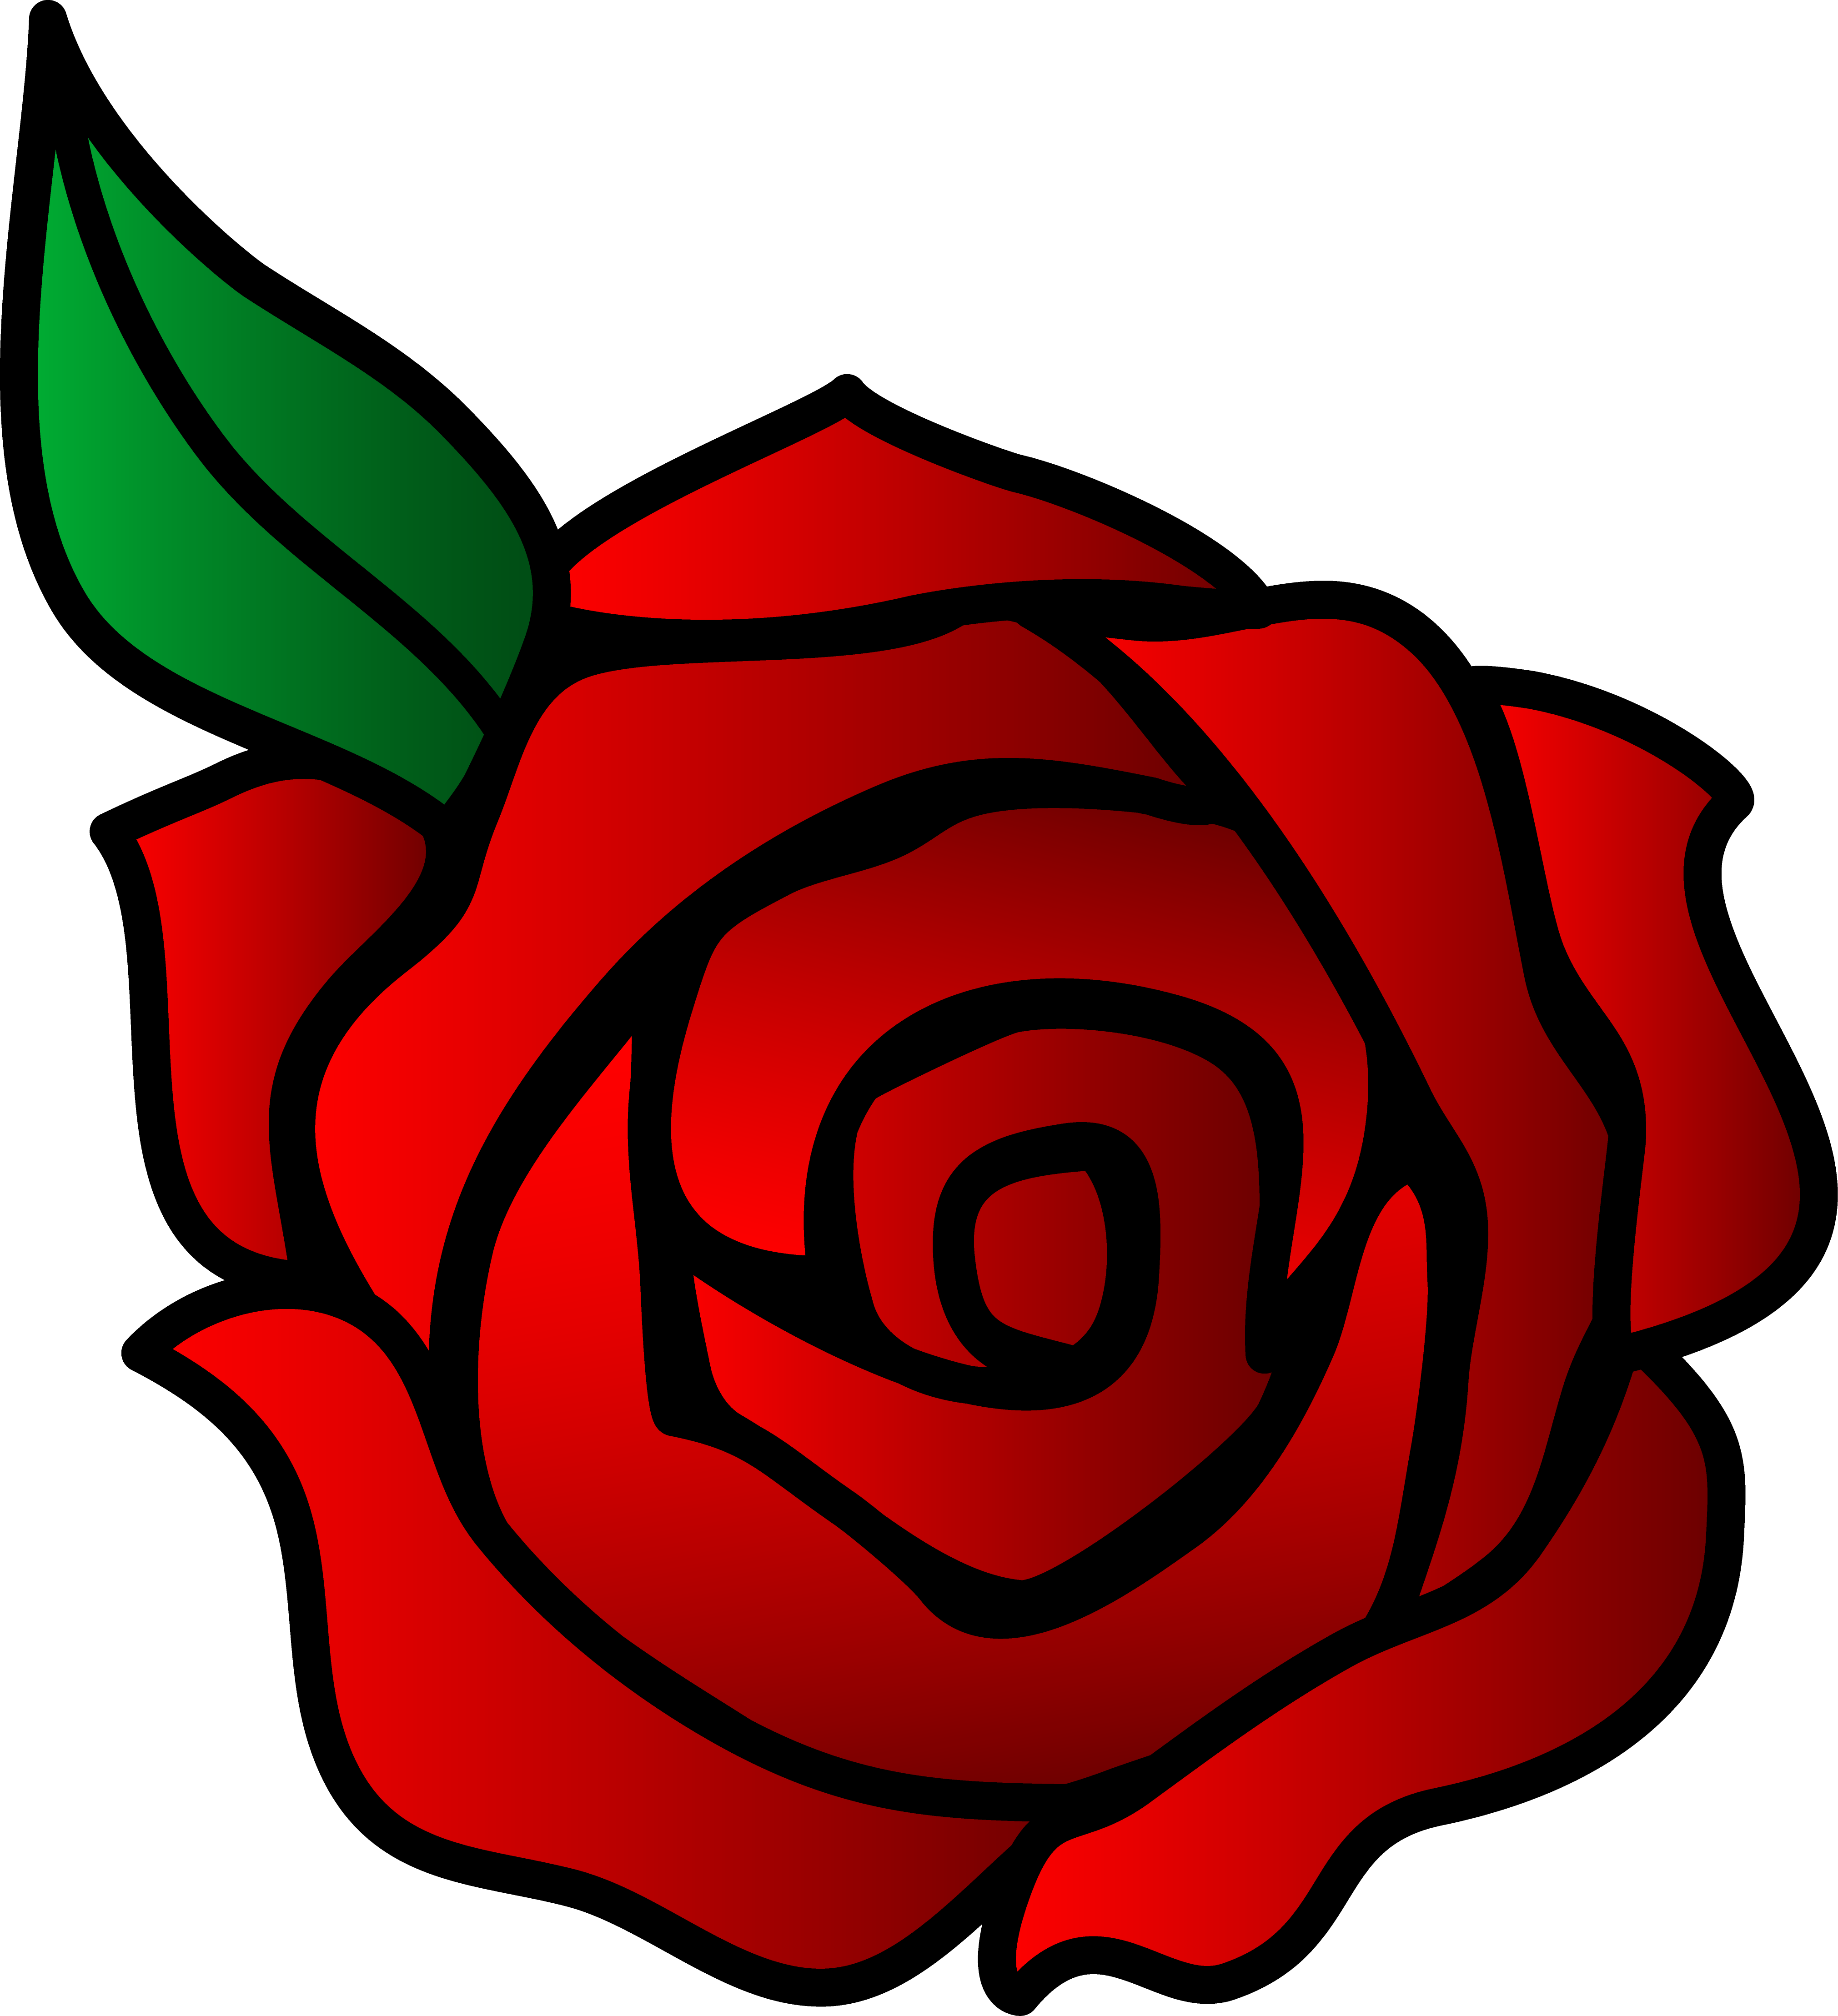 Red Rose Clip Art Images | Clipart Panda - Free Clipart Images